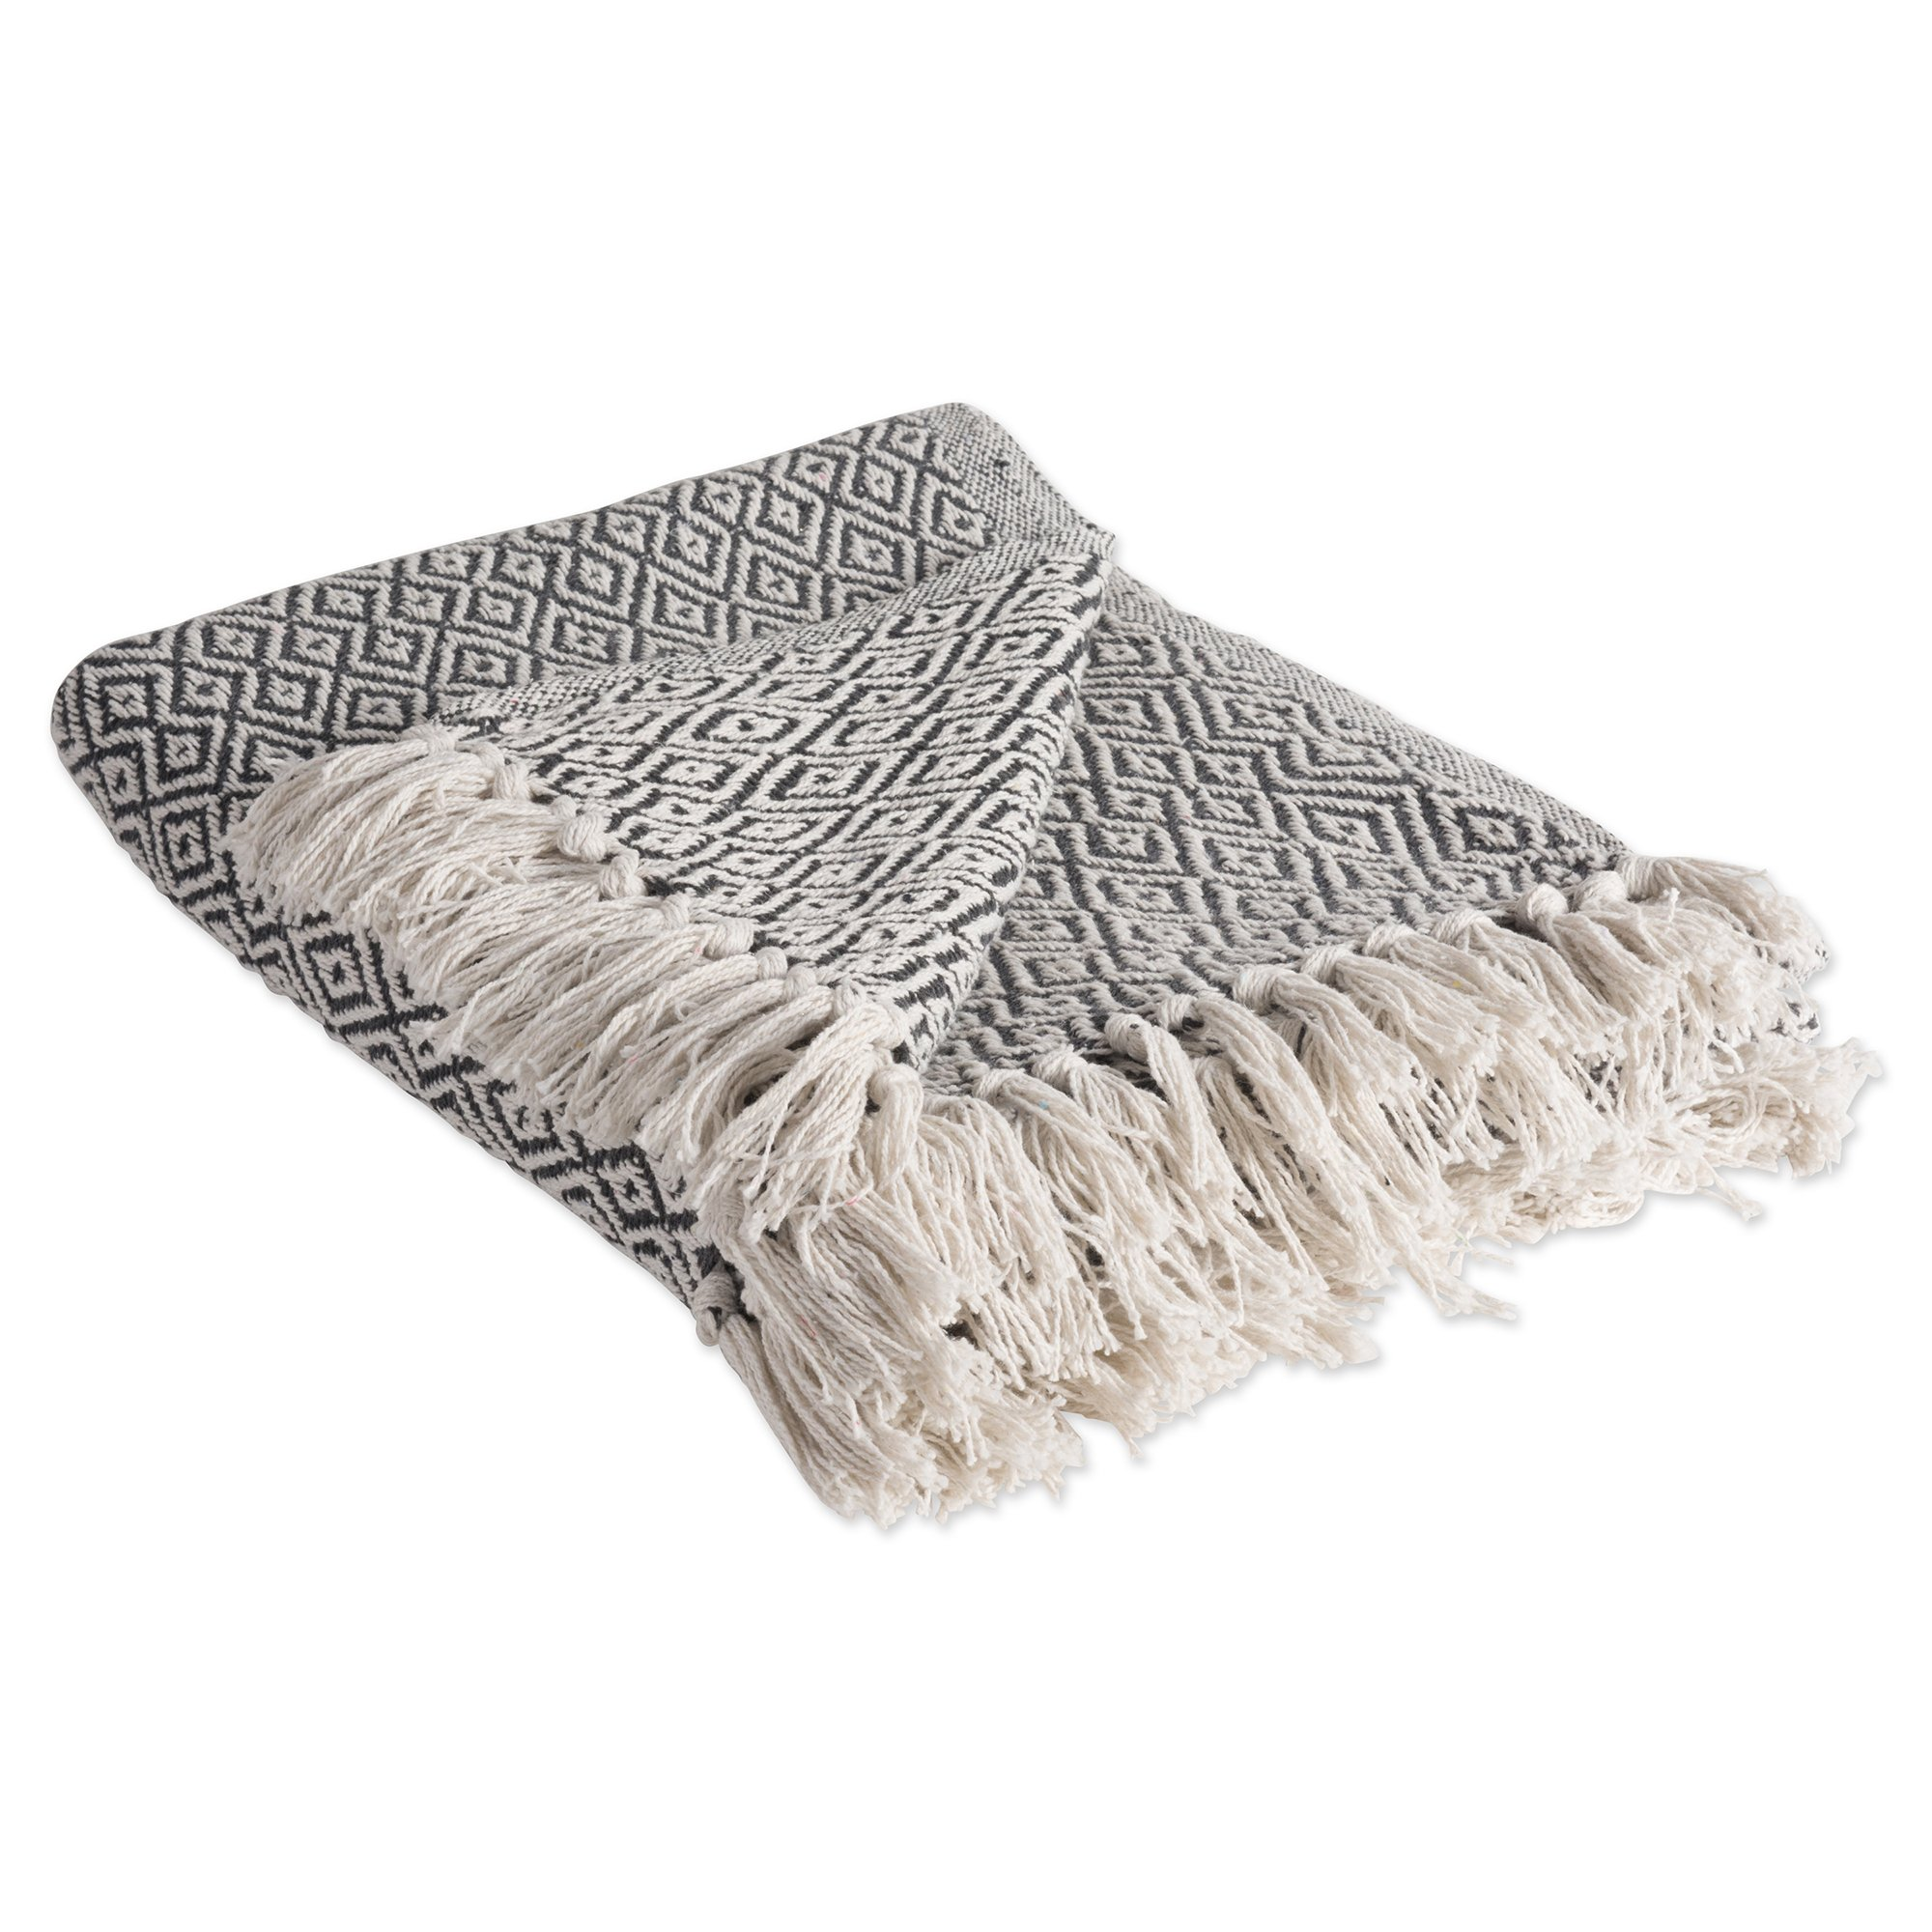 DII Rustic Farmhouse Cotton Diamond Blanket Throw with Fringe For Chair, Couch, Picnic, Camping, Beach, & Everyday Use , 50 x 60'' - Fields of Diamond Mineral